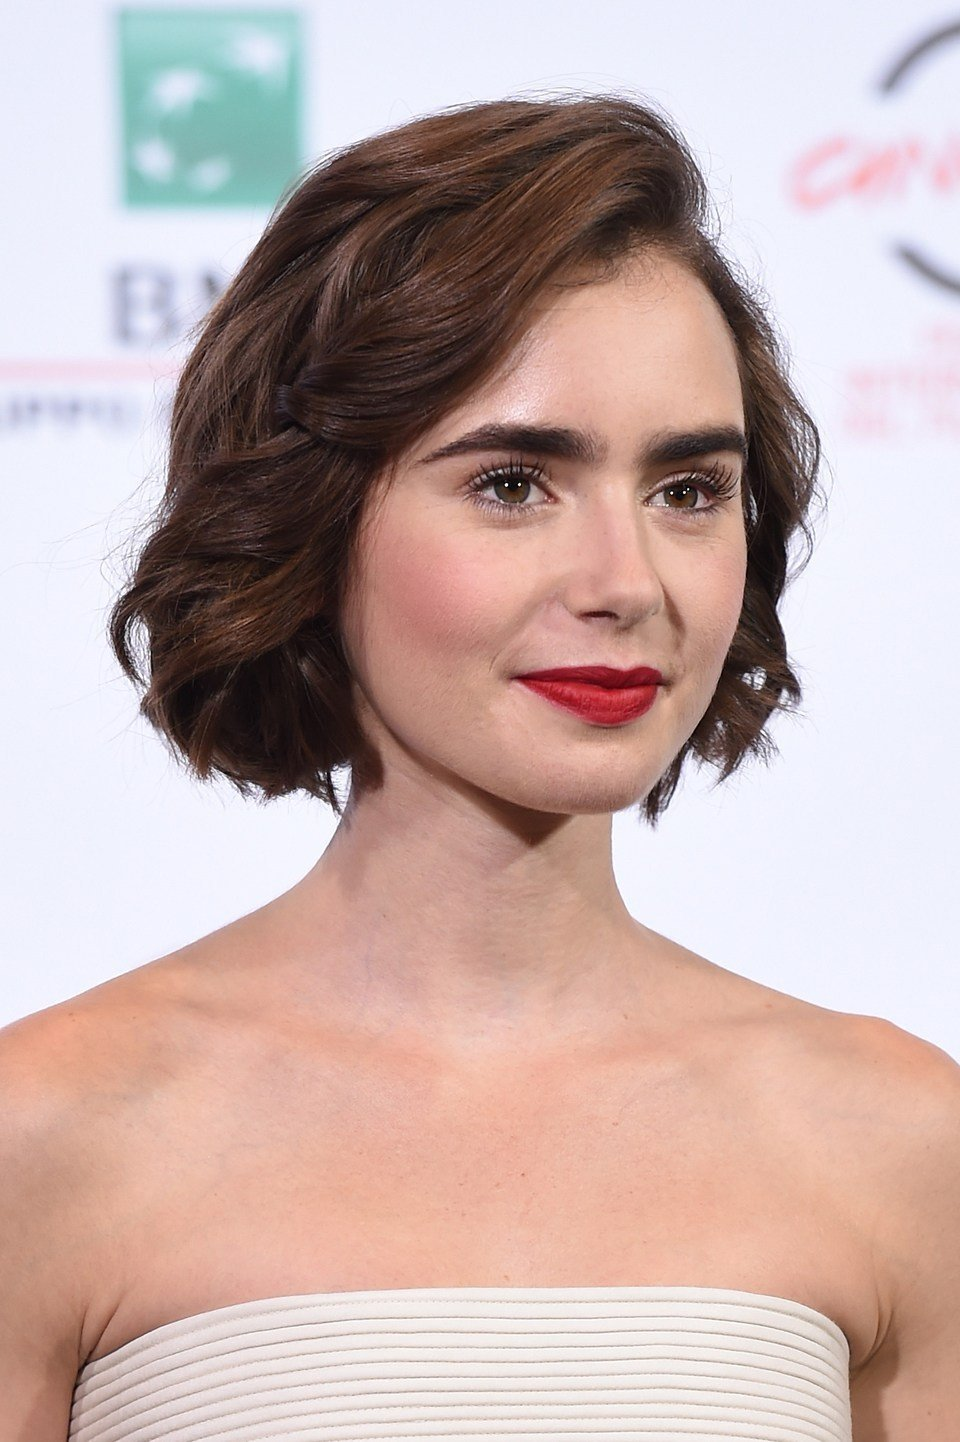 New The Best Haircuts For Thick Hair—Ever Stylecaster Ideas With Pictures